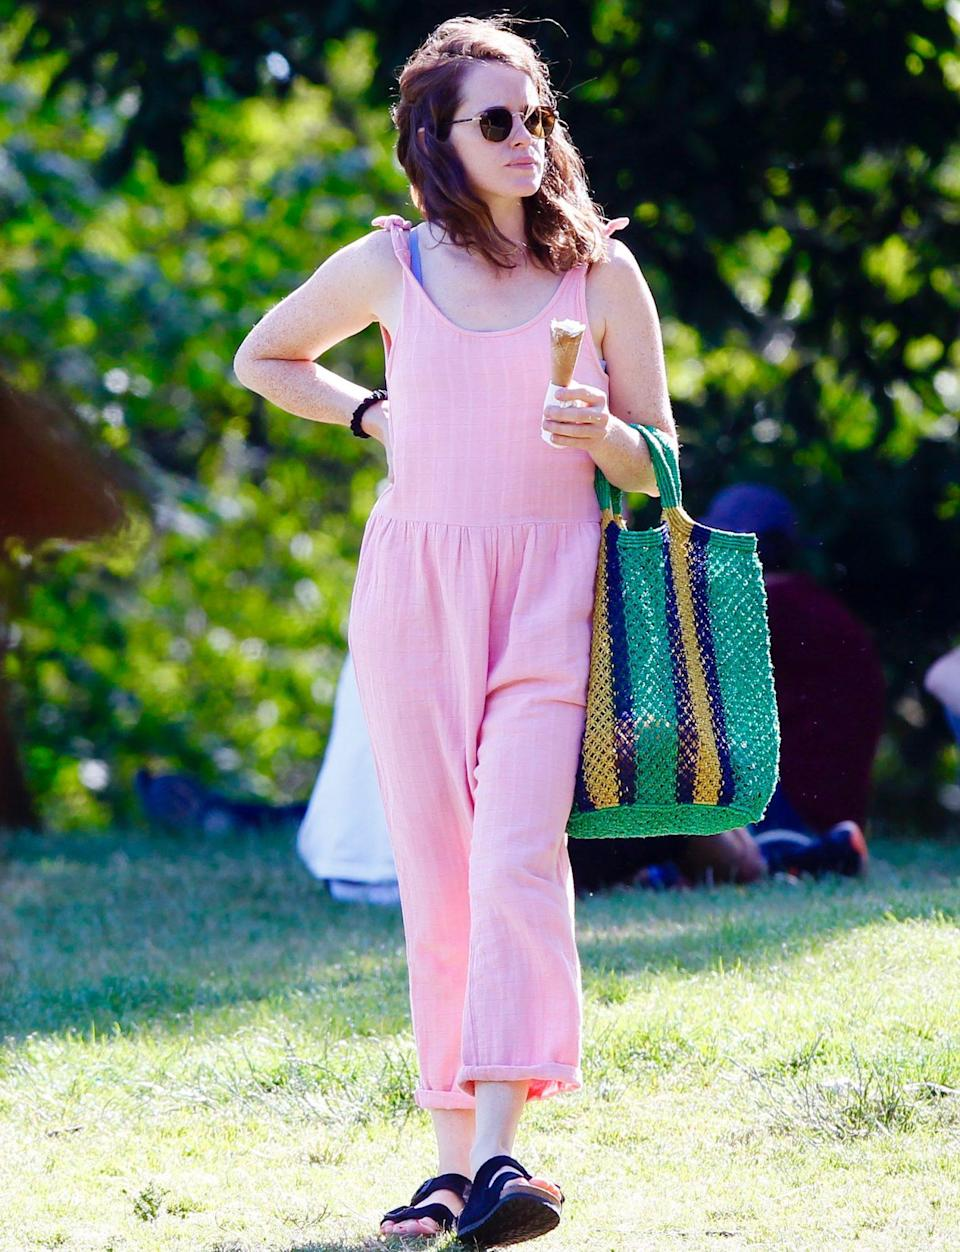 <p>Claire Foy enjoys a sweet treat as she heads to a socially distanced hangout with a friend in London on Tuesday.</p>